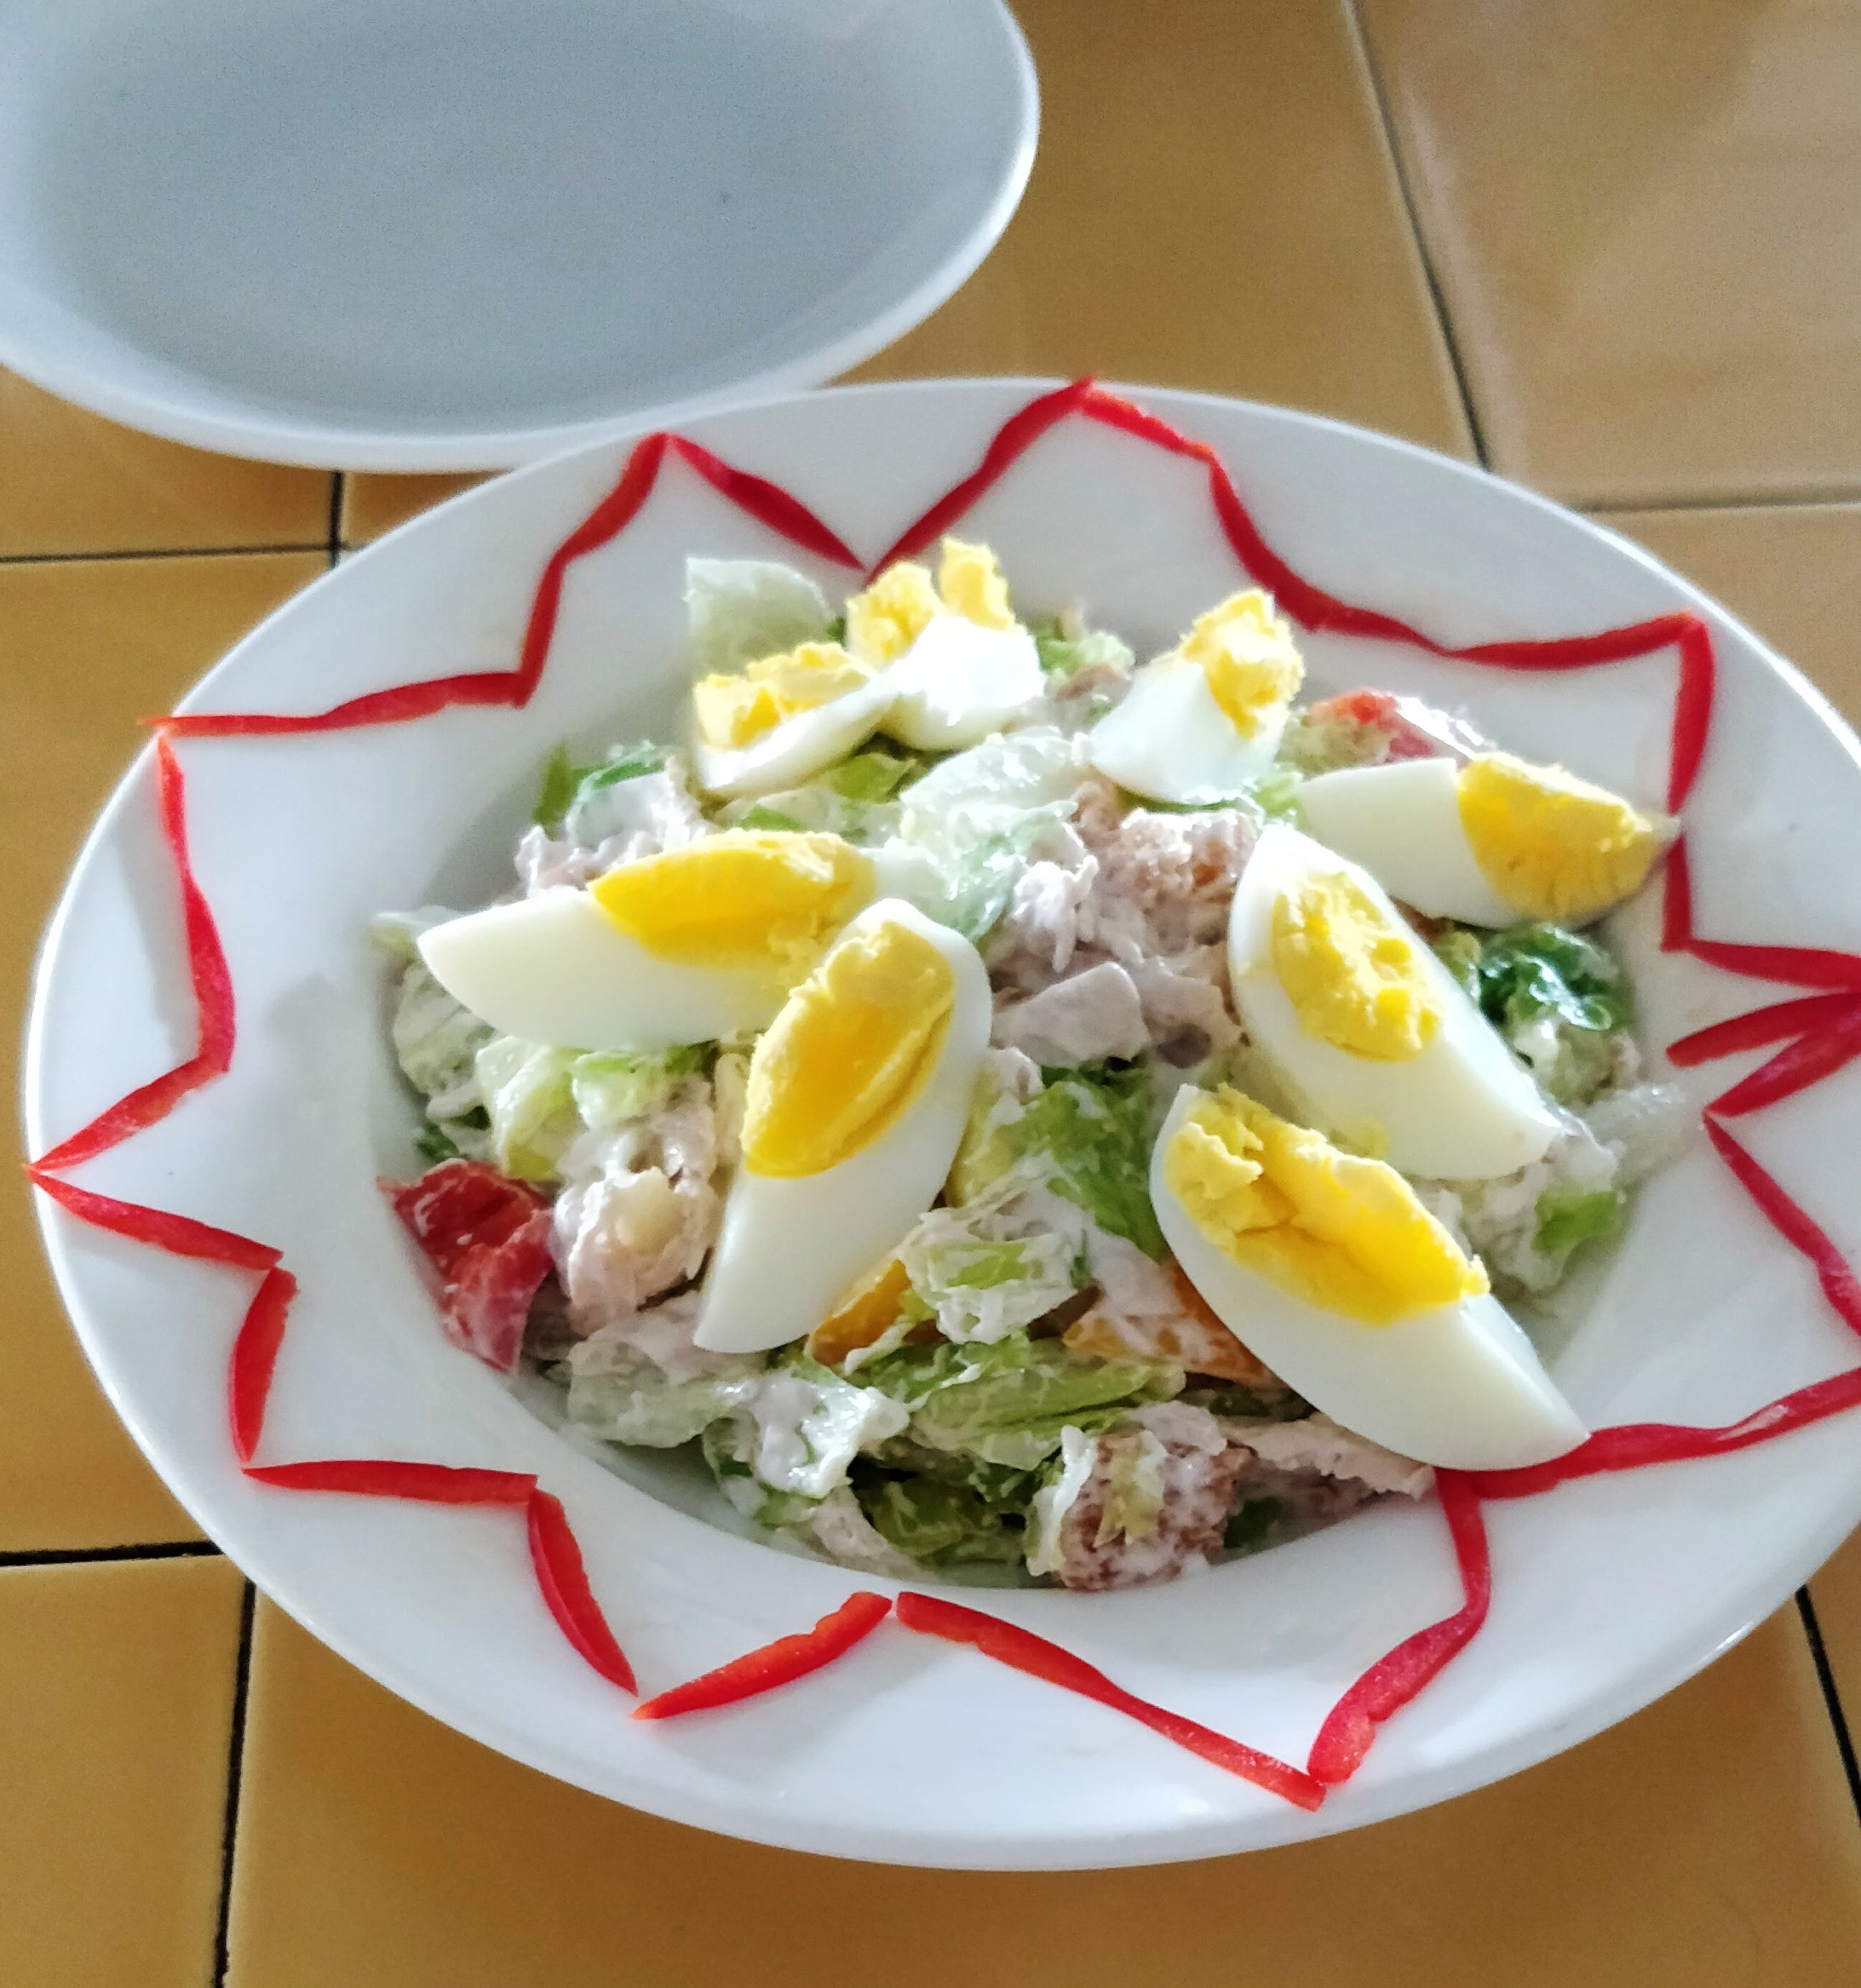 Dish,Food,Cuisine,Salad,Ingredient,Egg salad,Produce,Staple food,Salad niçoise,Recipe